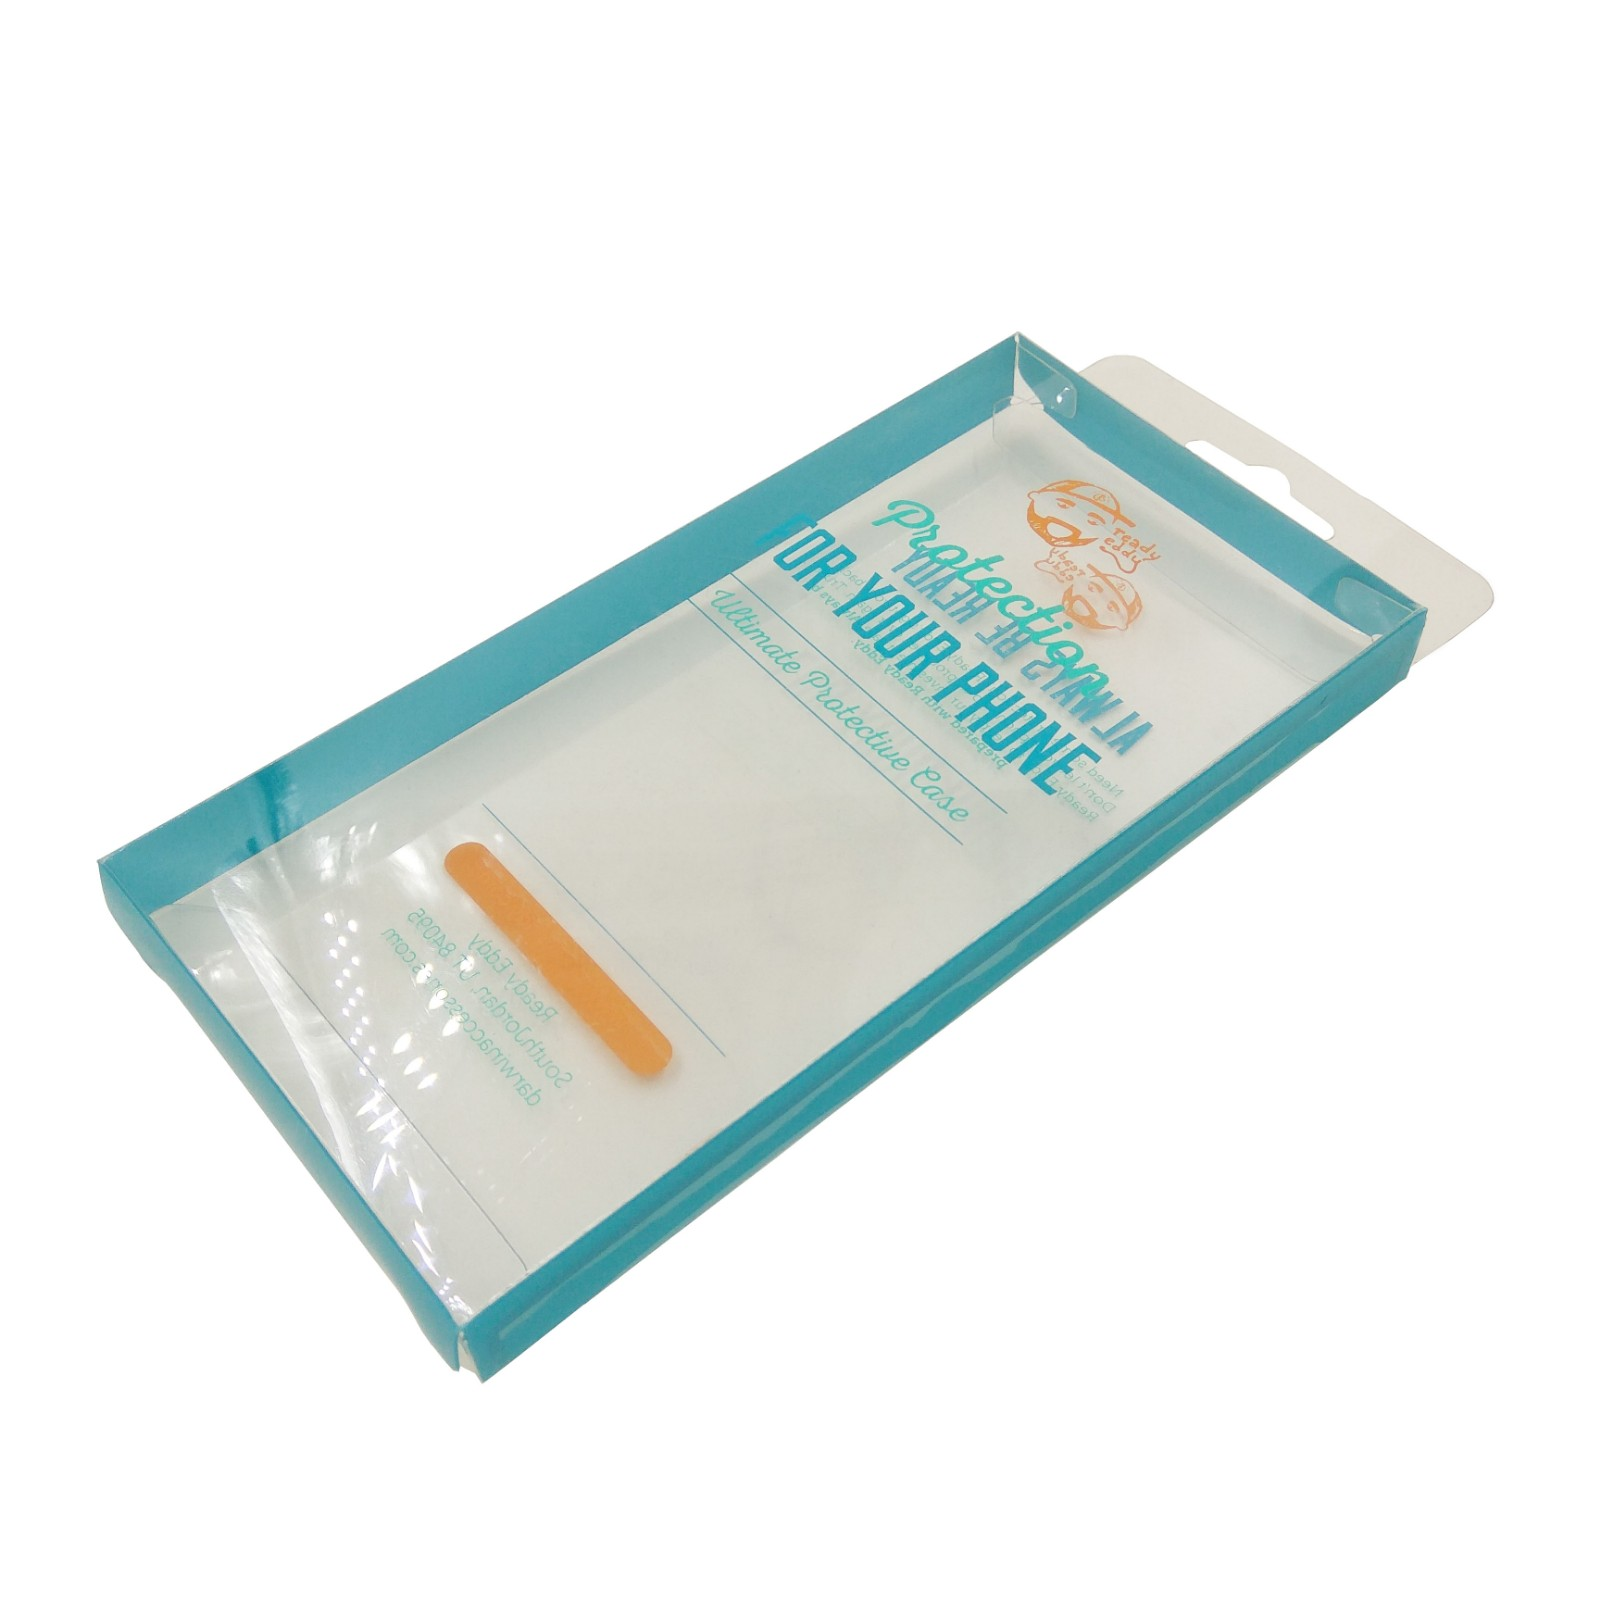 Yijianxing Plastic Products pvc plastic box packaging widely-use for decor-3